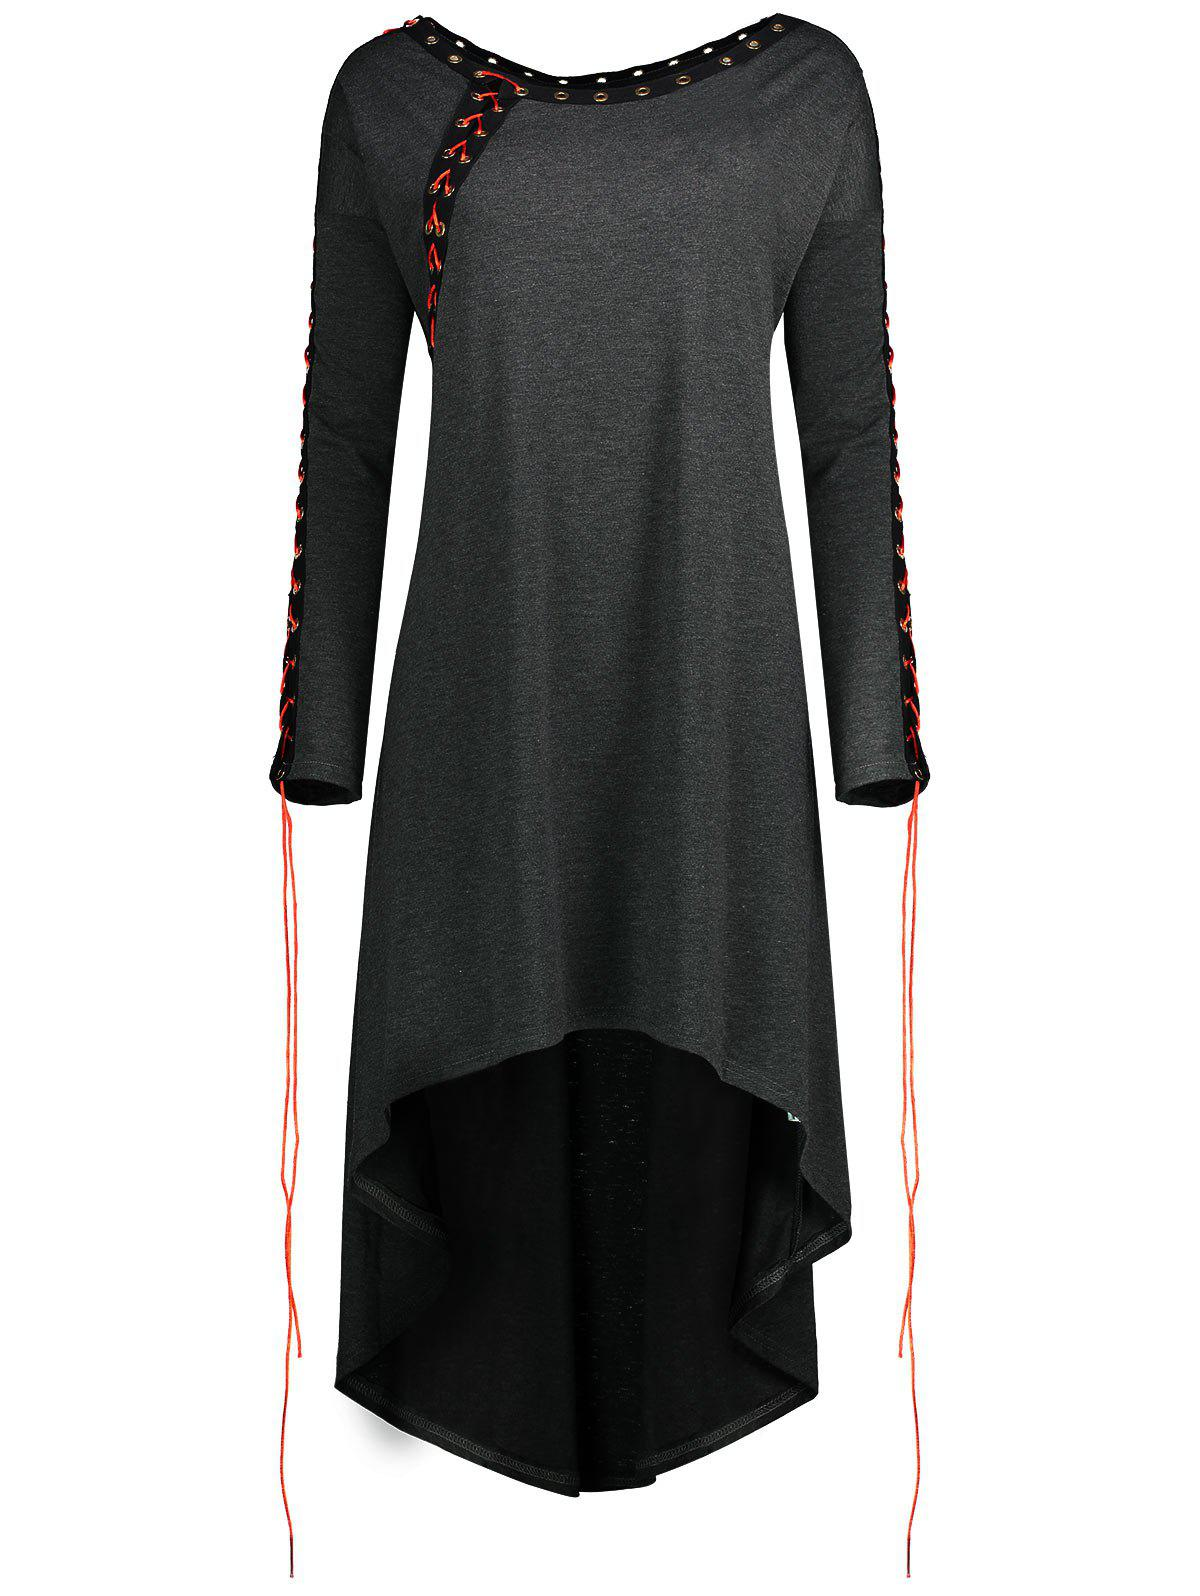 Lace Up Plus Size Asymmetric Tunic Top - DARK GRAY XL